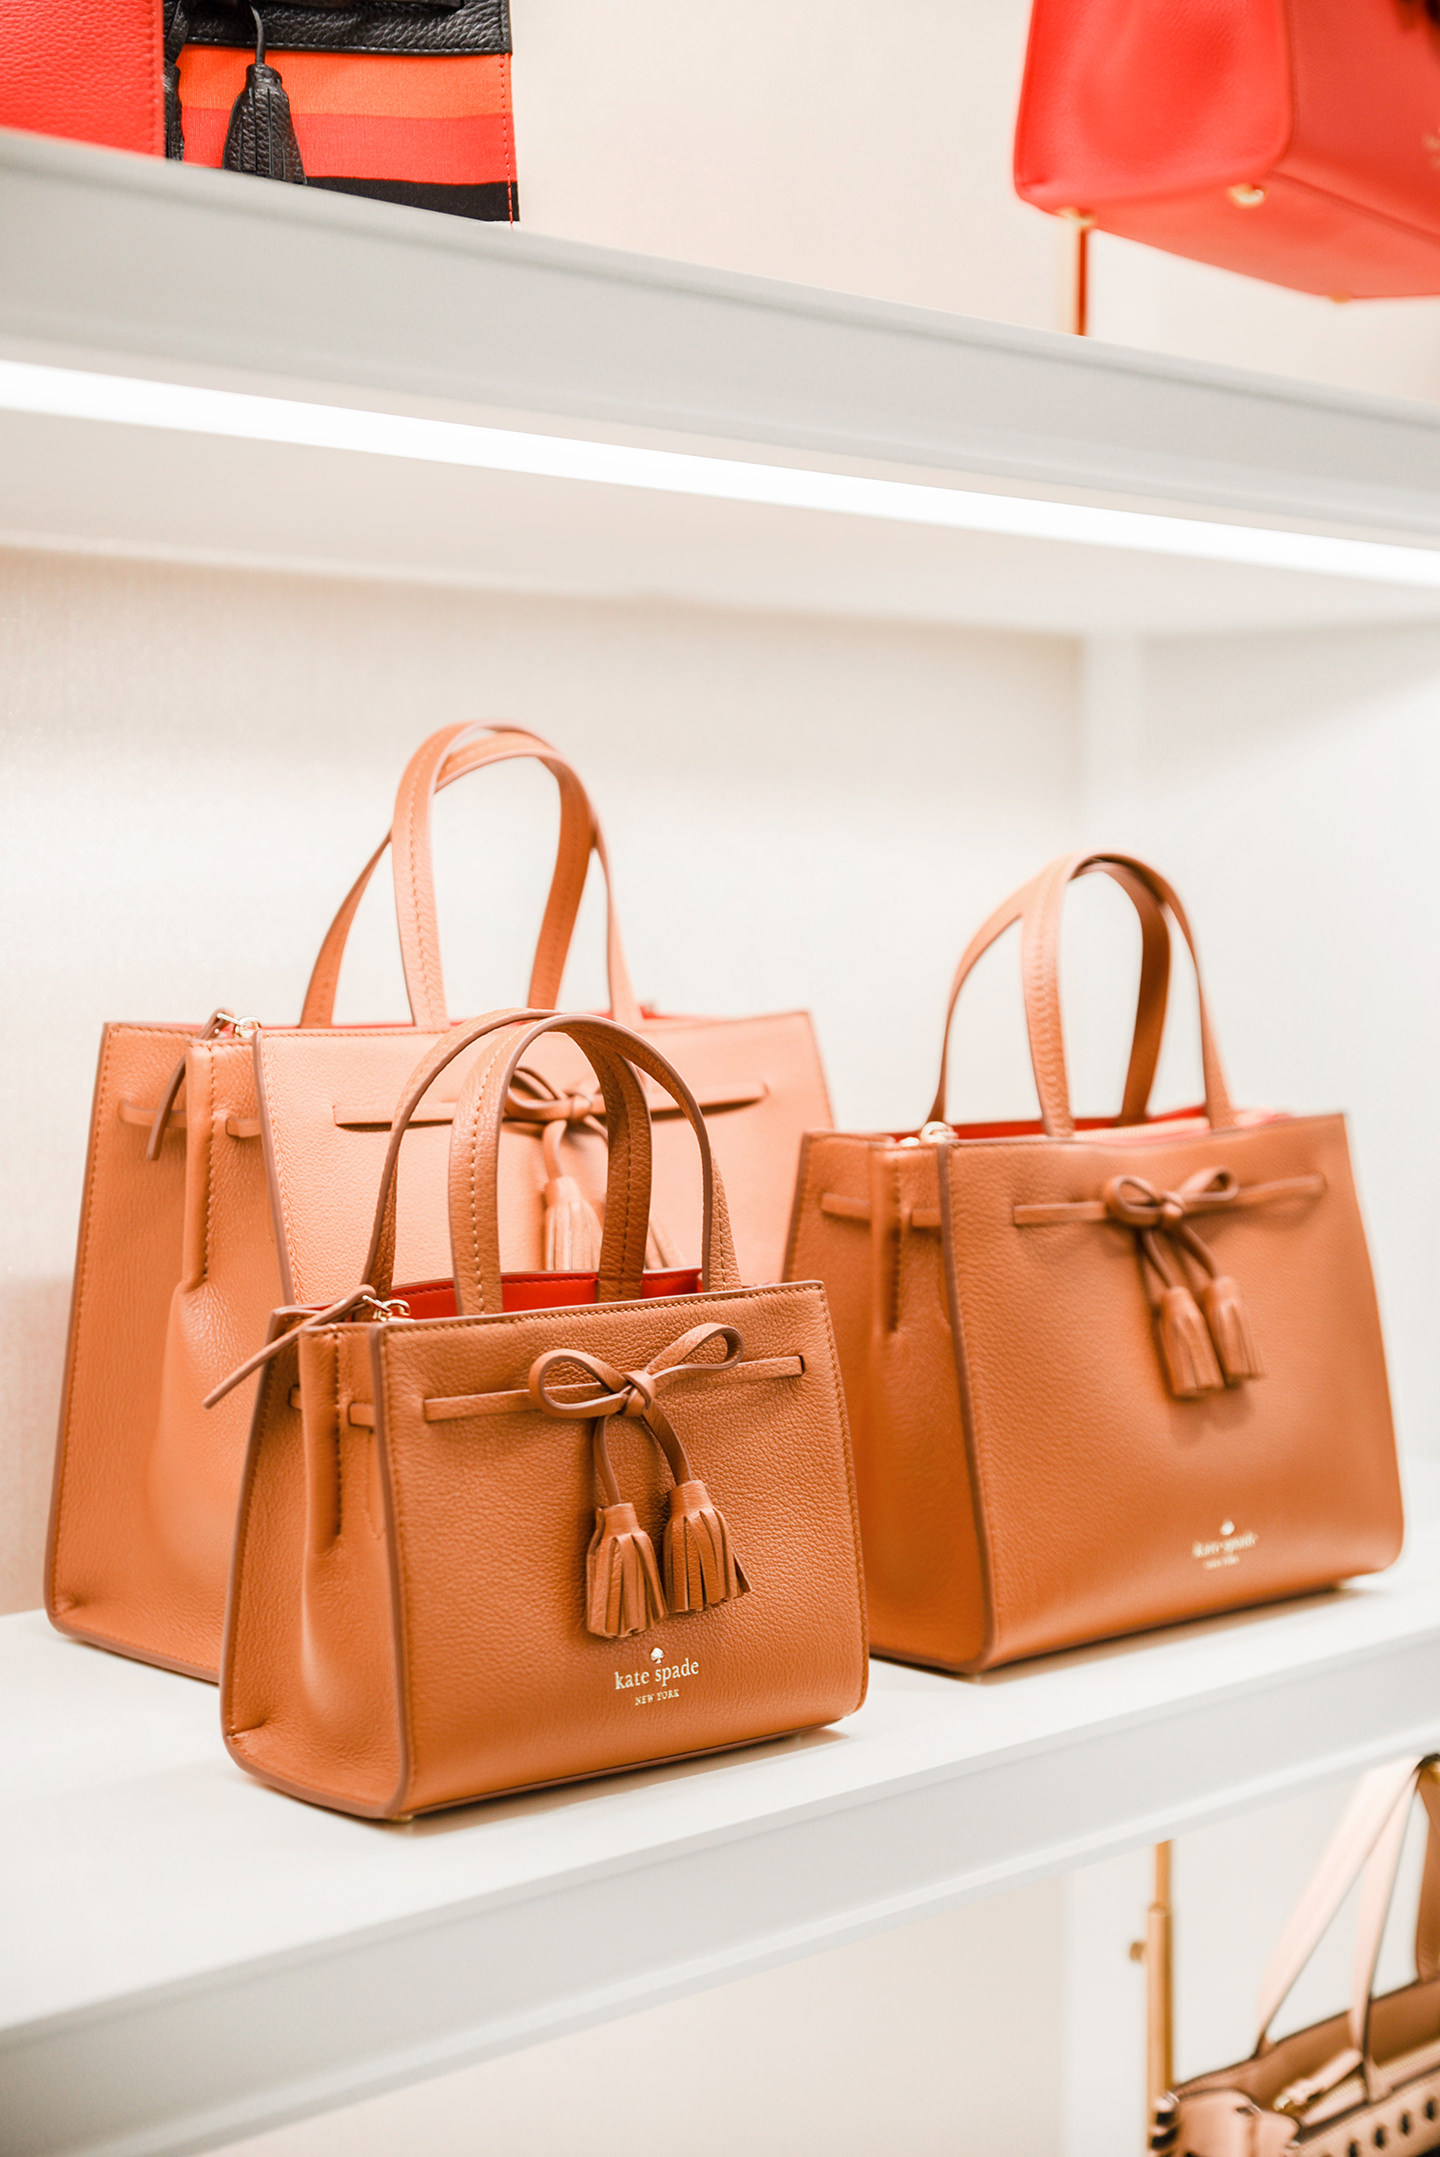 Blog-Mode-And-The-City-Lifestyle-Kate-Spade-Paris-418-rue-saint-honore-7